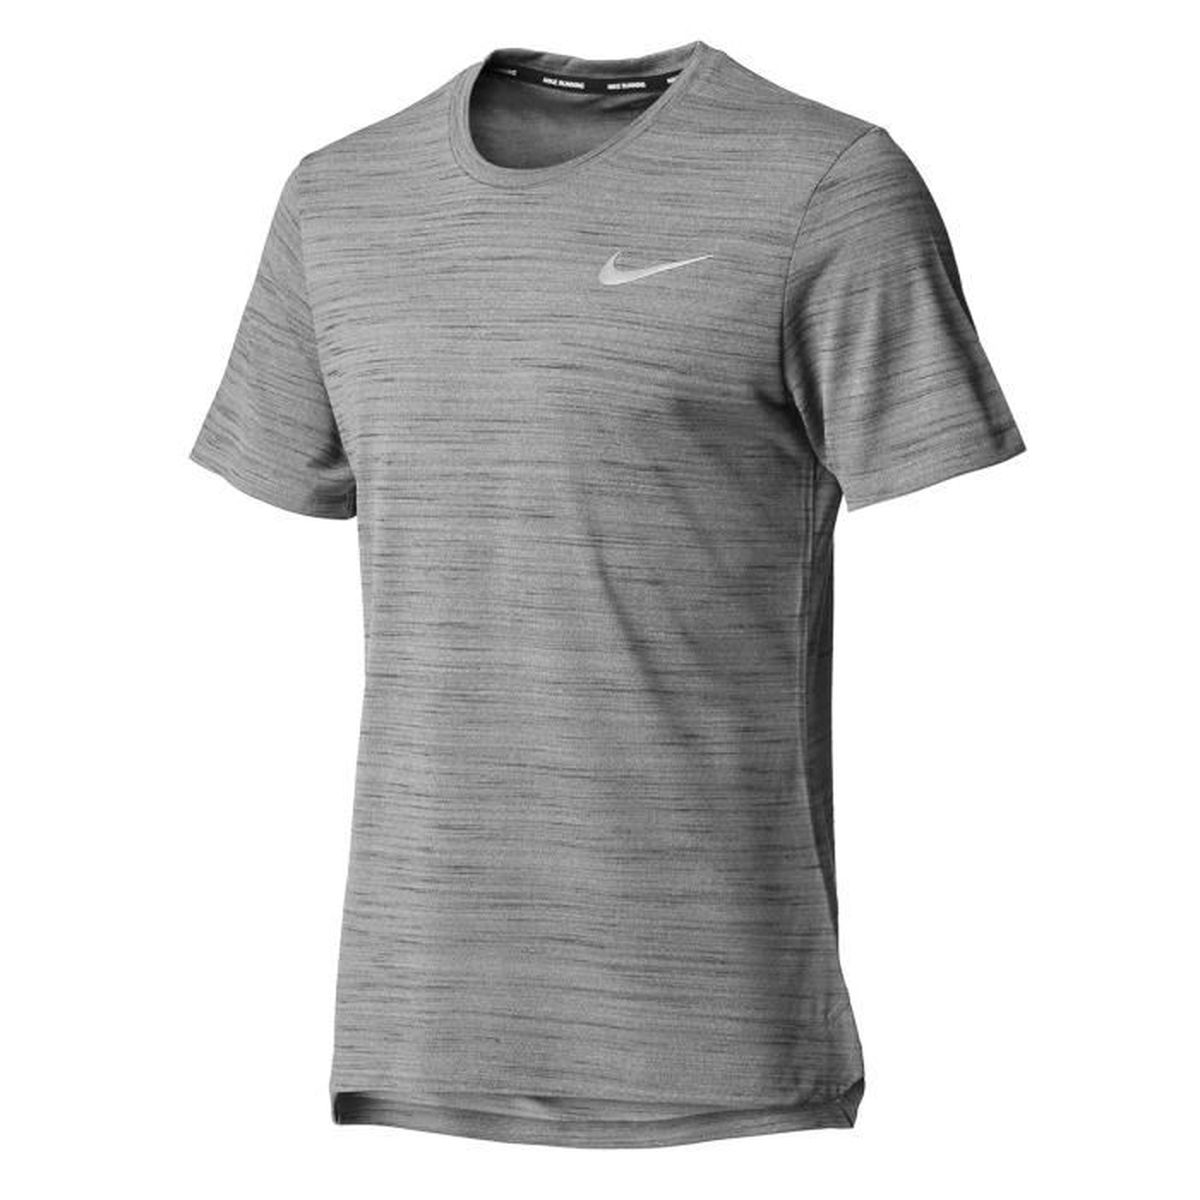 1be3a95f1640 T shirt nike - Achat   Vente pas cher